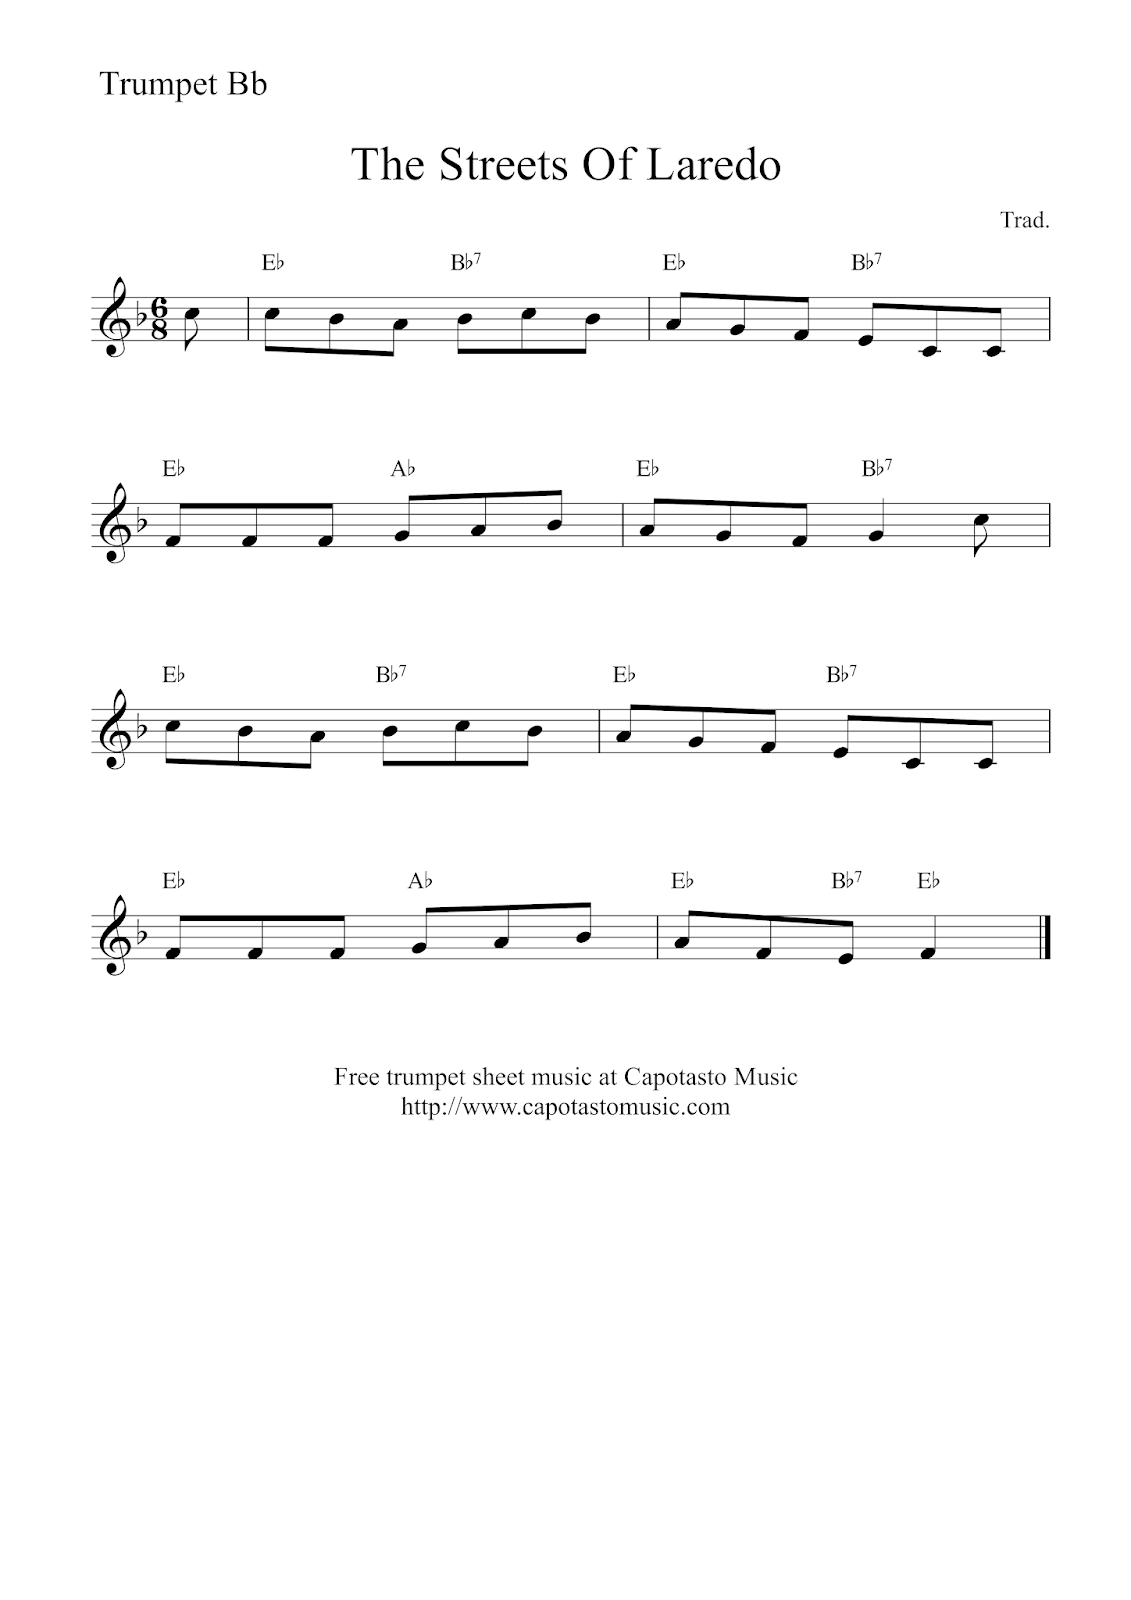 This is an image of Amazing Free Printable Sheet Music for Trumpet